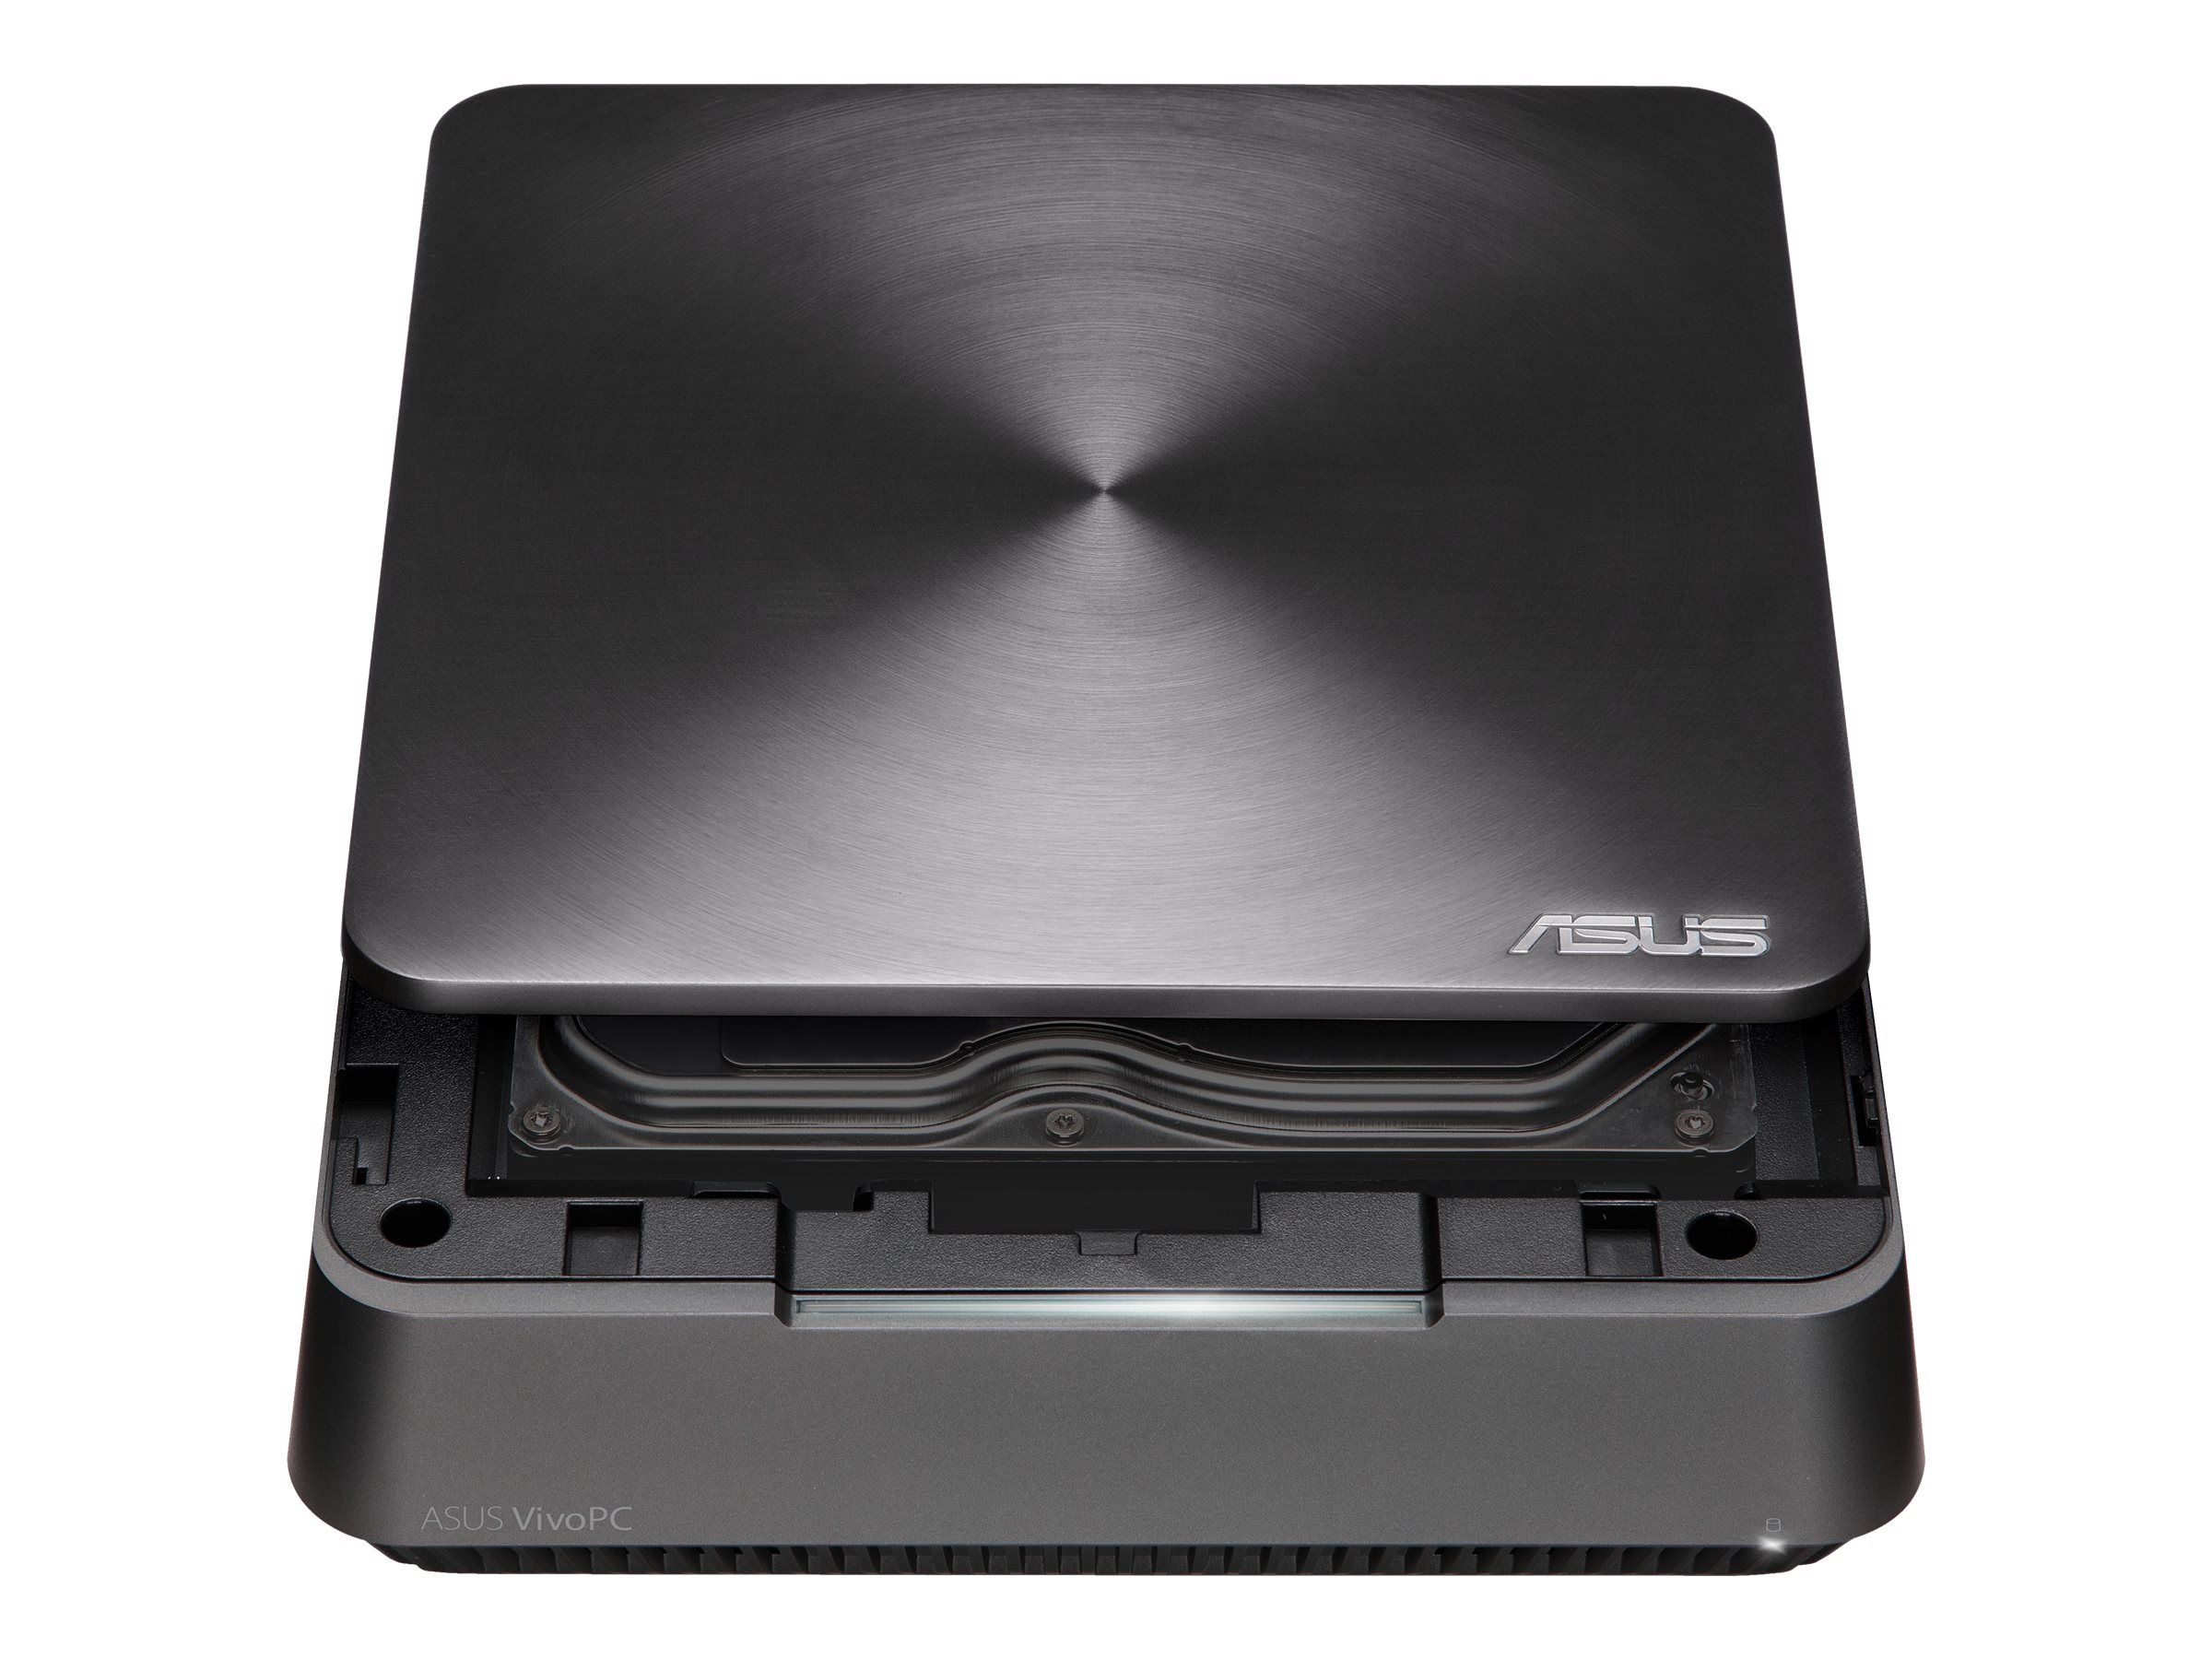 Asus VivoPC Mini Core i3-4030U 4GB 1TB GeForce 820M ac BT W1064, VM62-G216Z